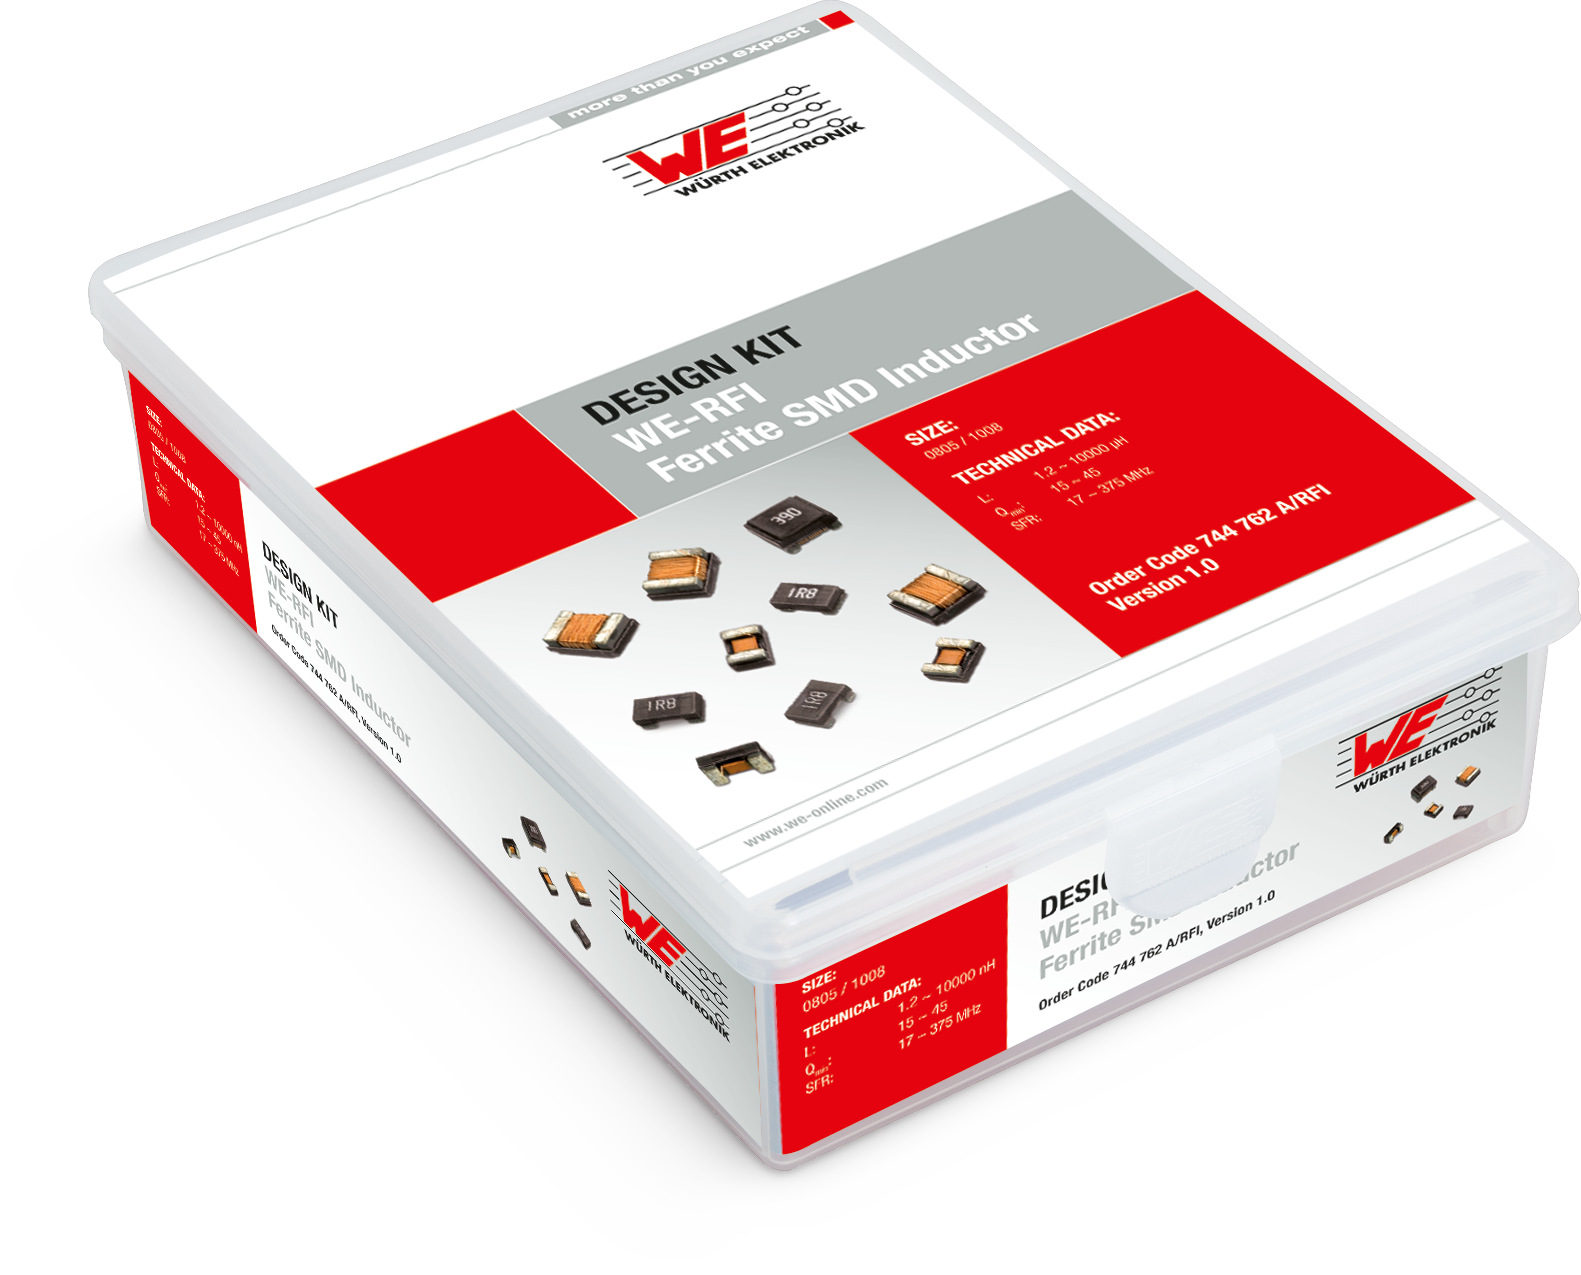 Design Kit WE-RFI Ferrite SMD Inductor - 0805/1008A Produktbild